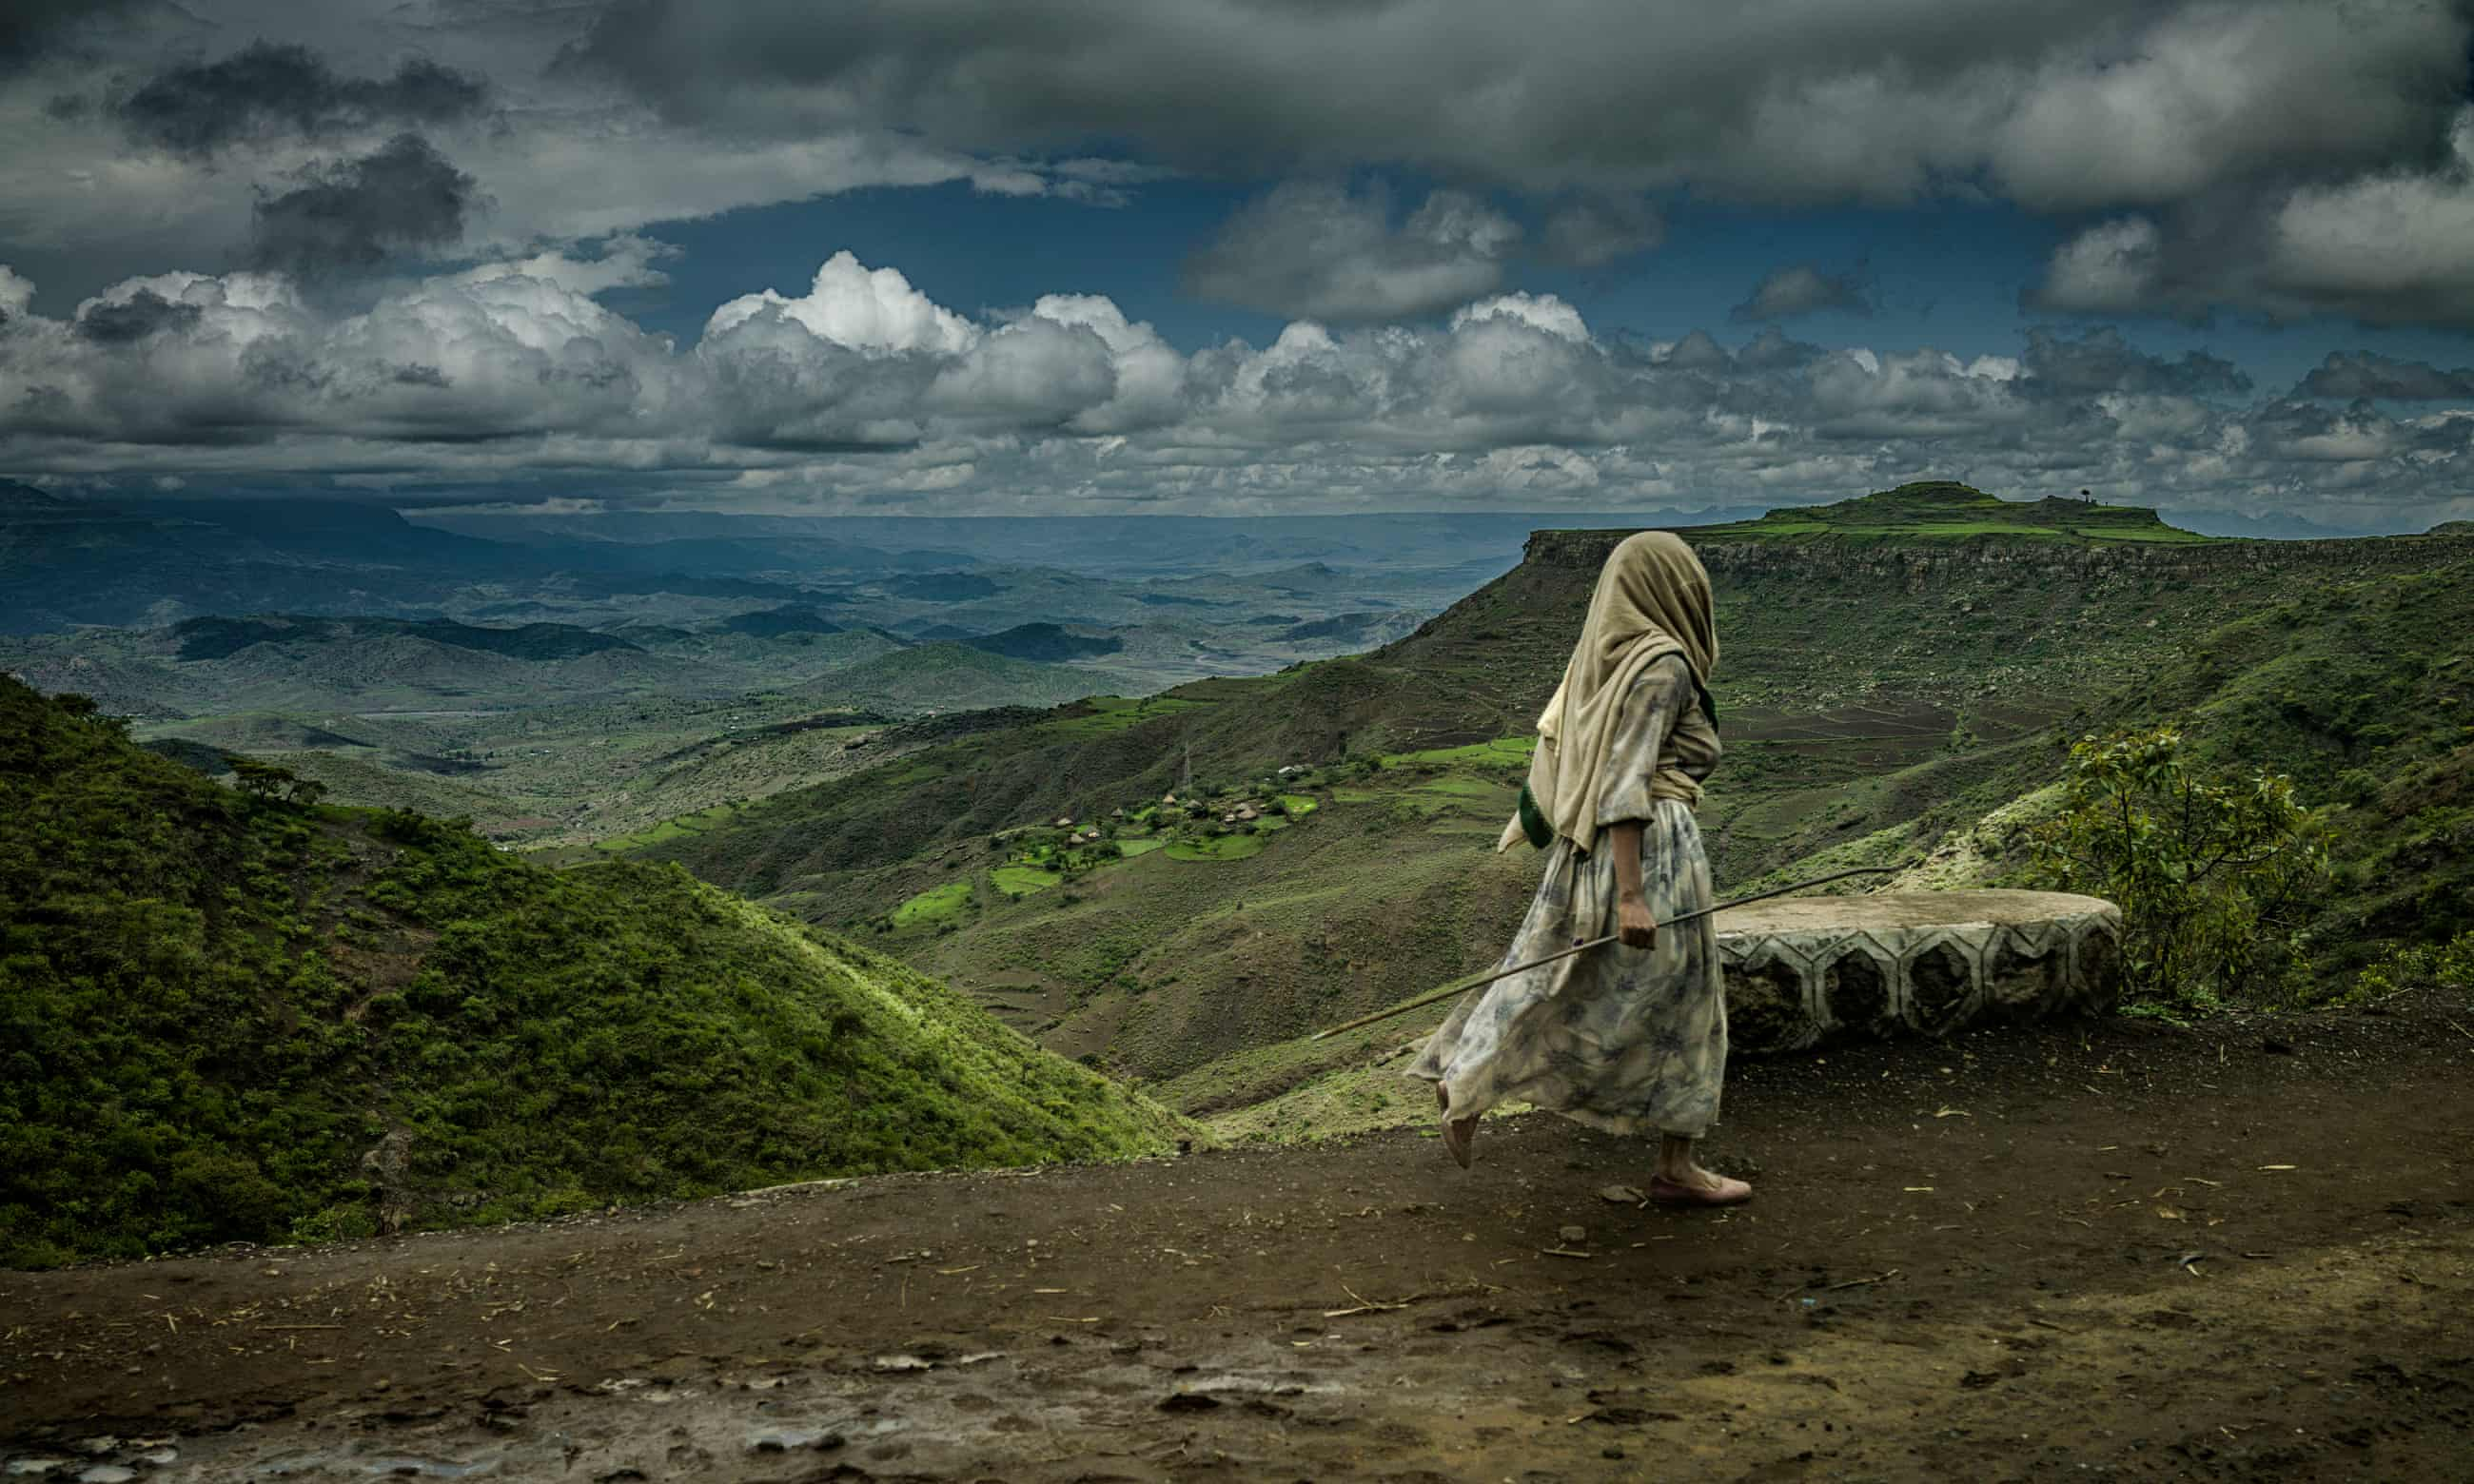 The worst drought for decades in Ethiopia's northern highlands has ended, but unusually heavy downpours threaten to ruin crops and exacerbate food insecurity as flash flooding turns roads to rivers and swamps fields Photographs by James Whitlow Delano/USAid